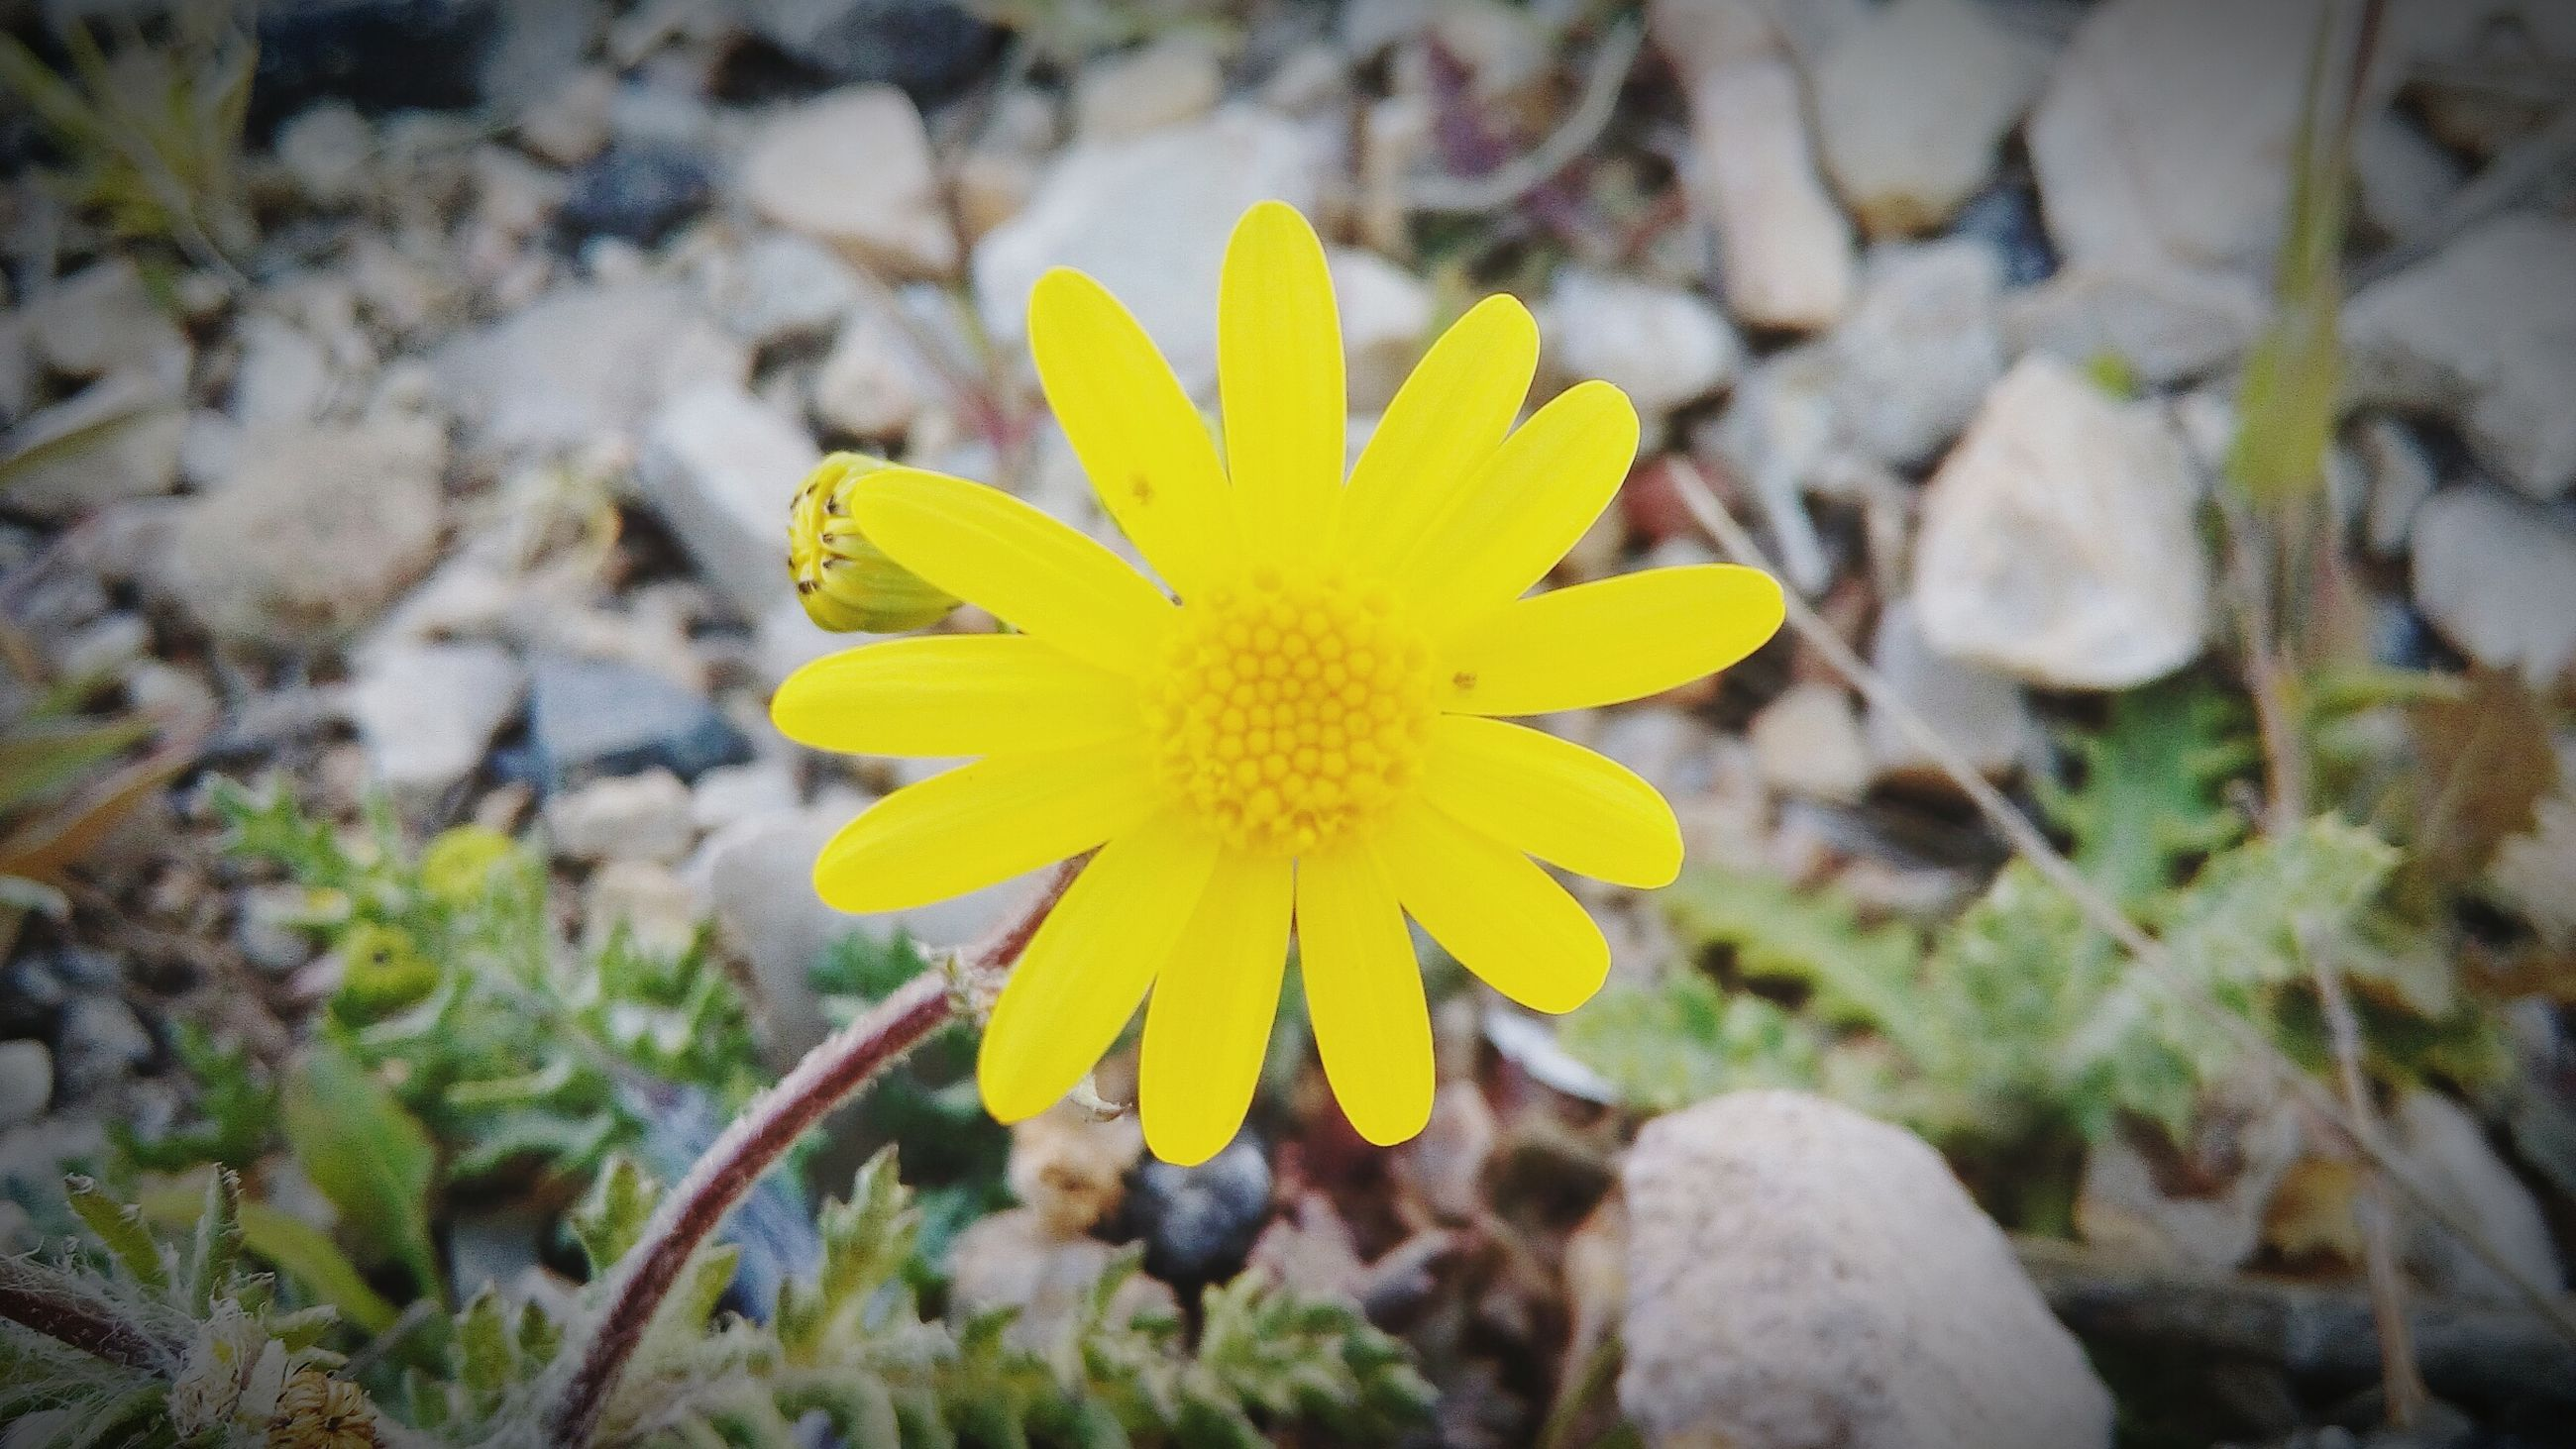 flower, yellow, petal, fragility, growth, focus on foreground, close-up, freshness, beauty in nature, flower head, nature, plant, blooming, single flower, field, in bloom, day, outdoors, selective focus, no people